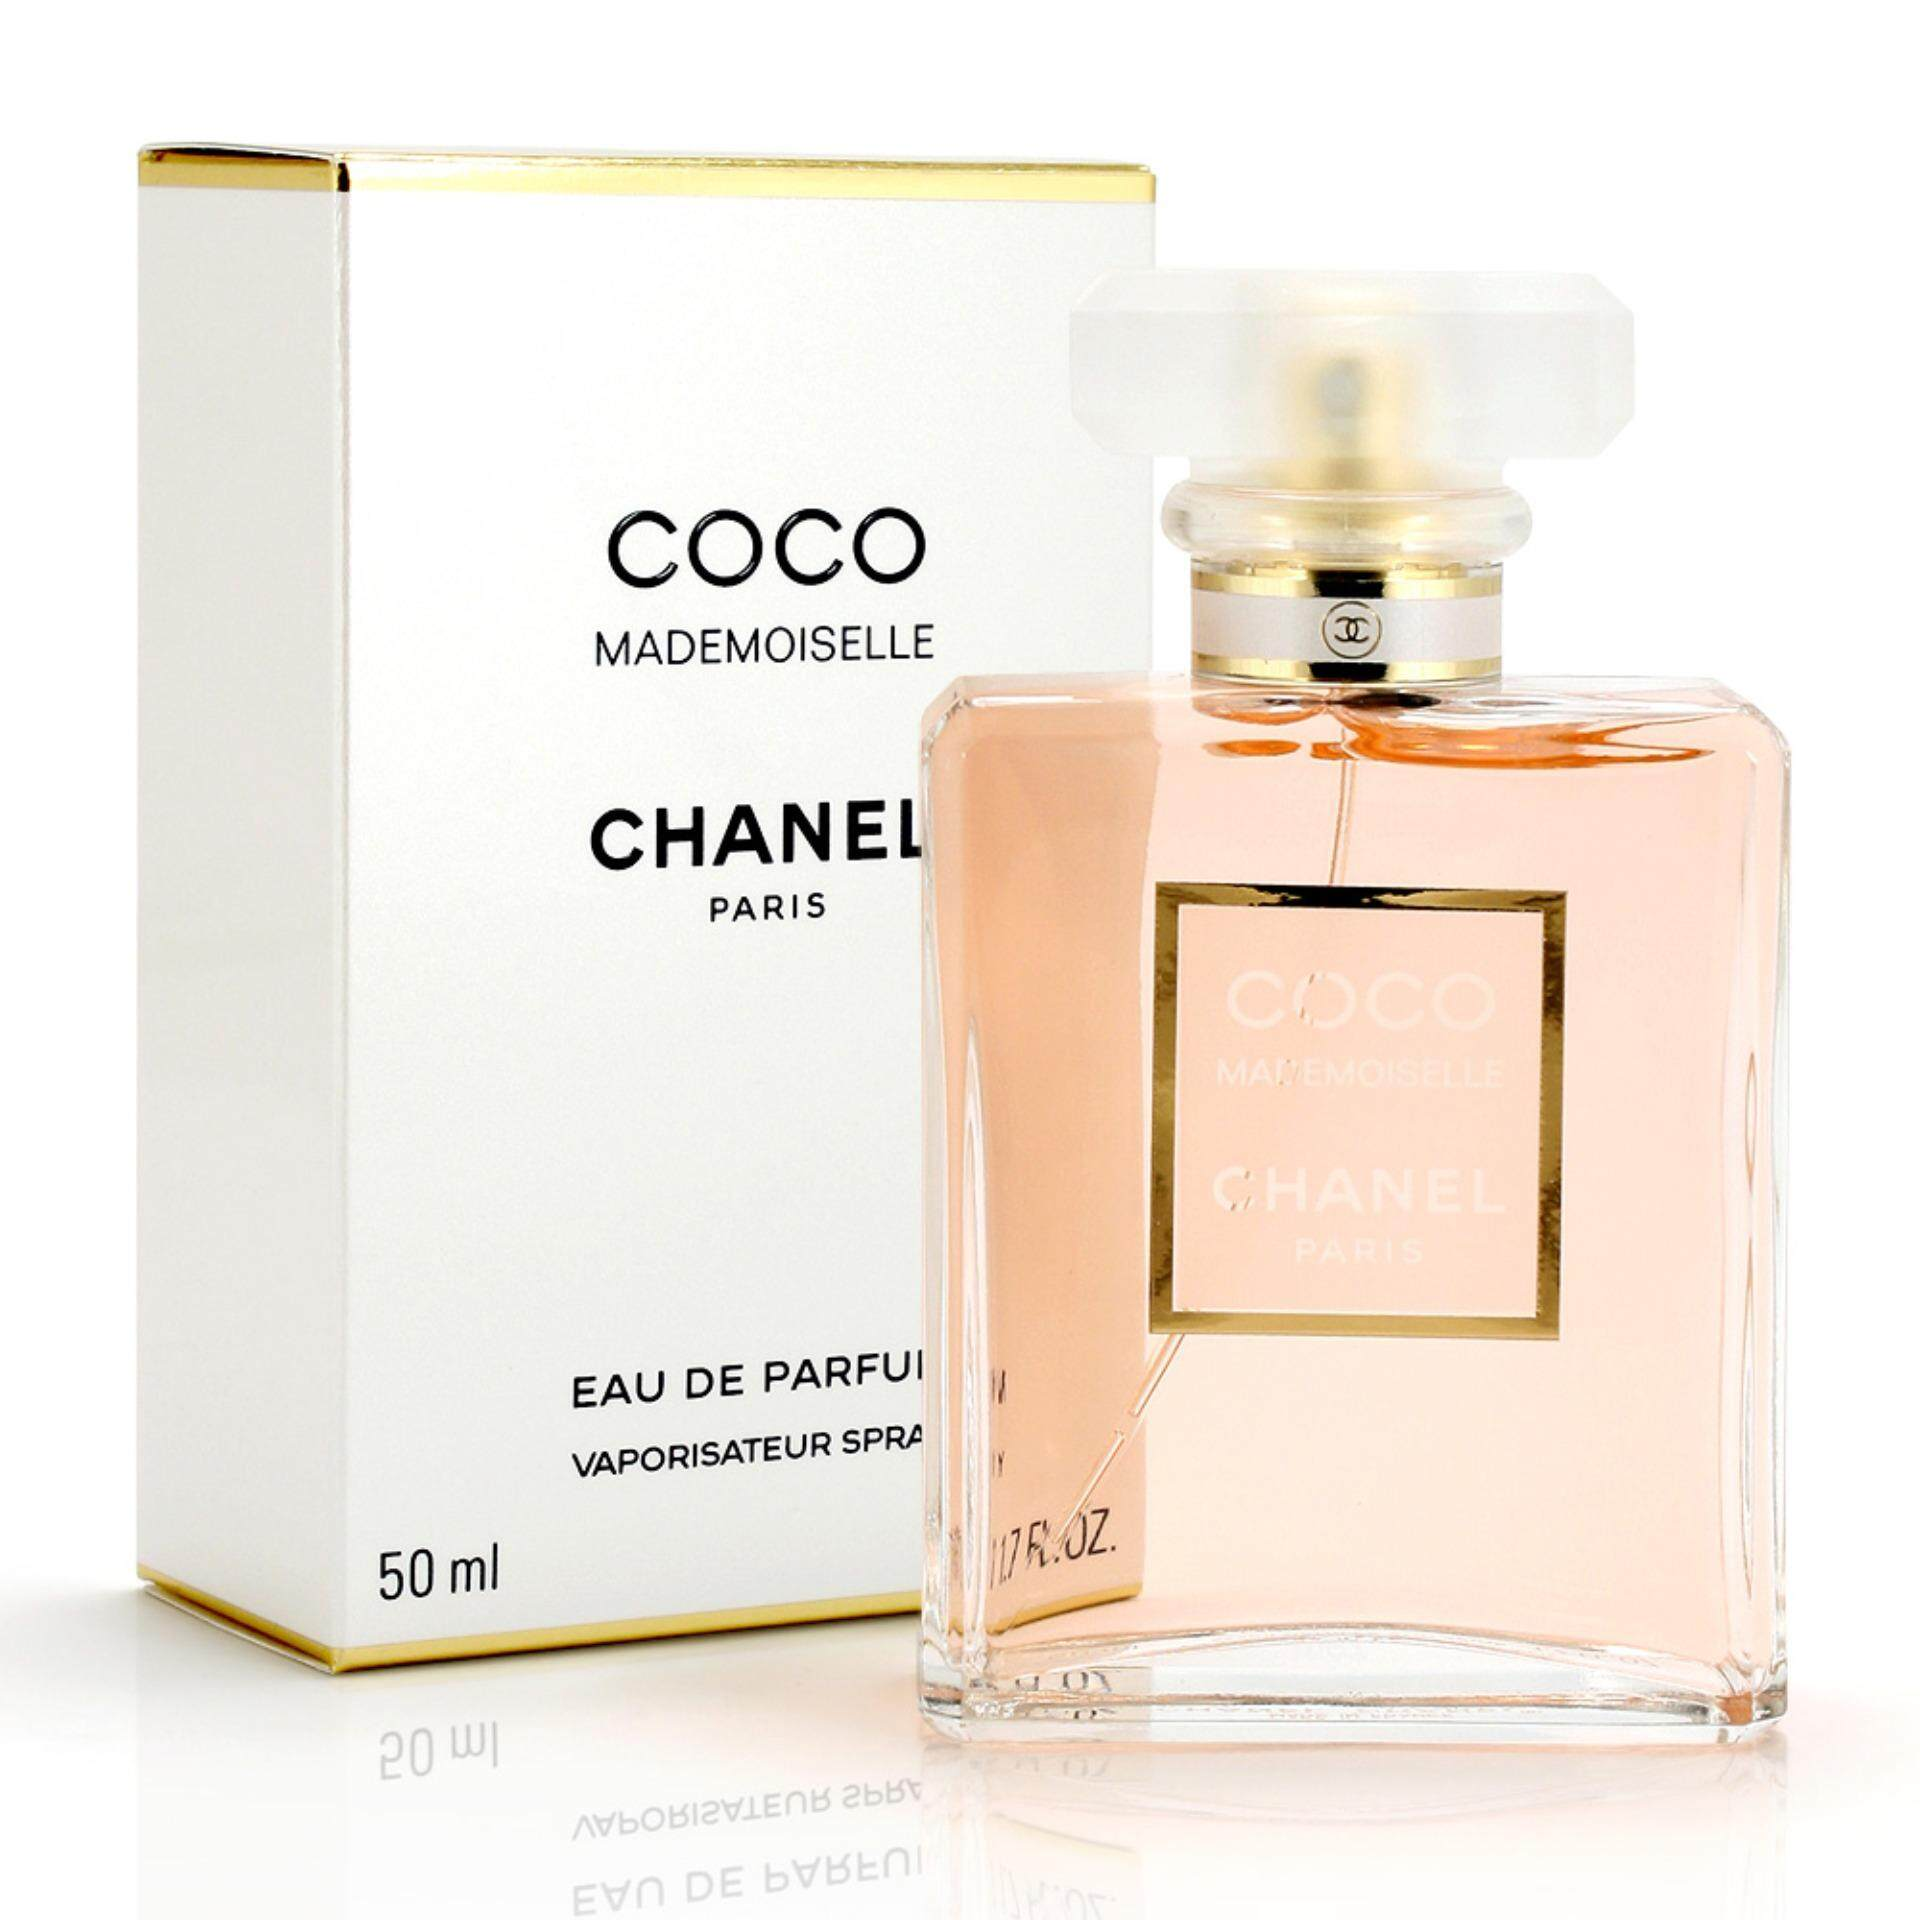 Perfumes For Men Women The Best Price In Malaysia Atasan Casual Wanita Rc686 Coco Mademoiselle Eau De Parfum 50ml